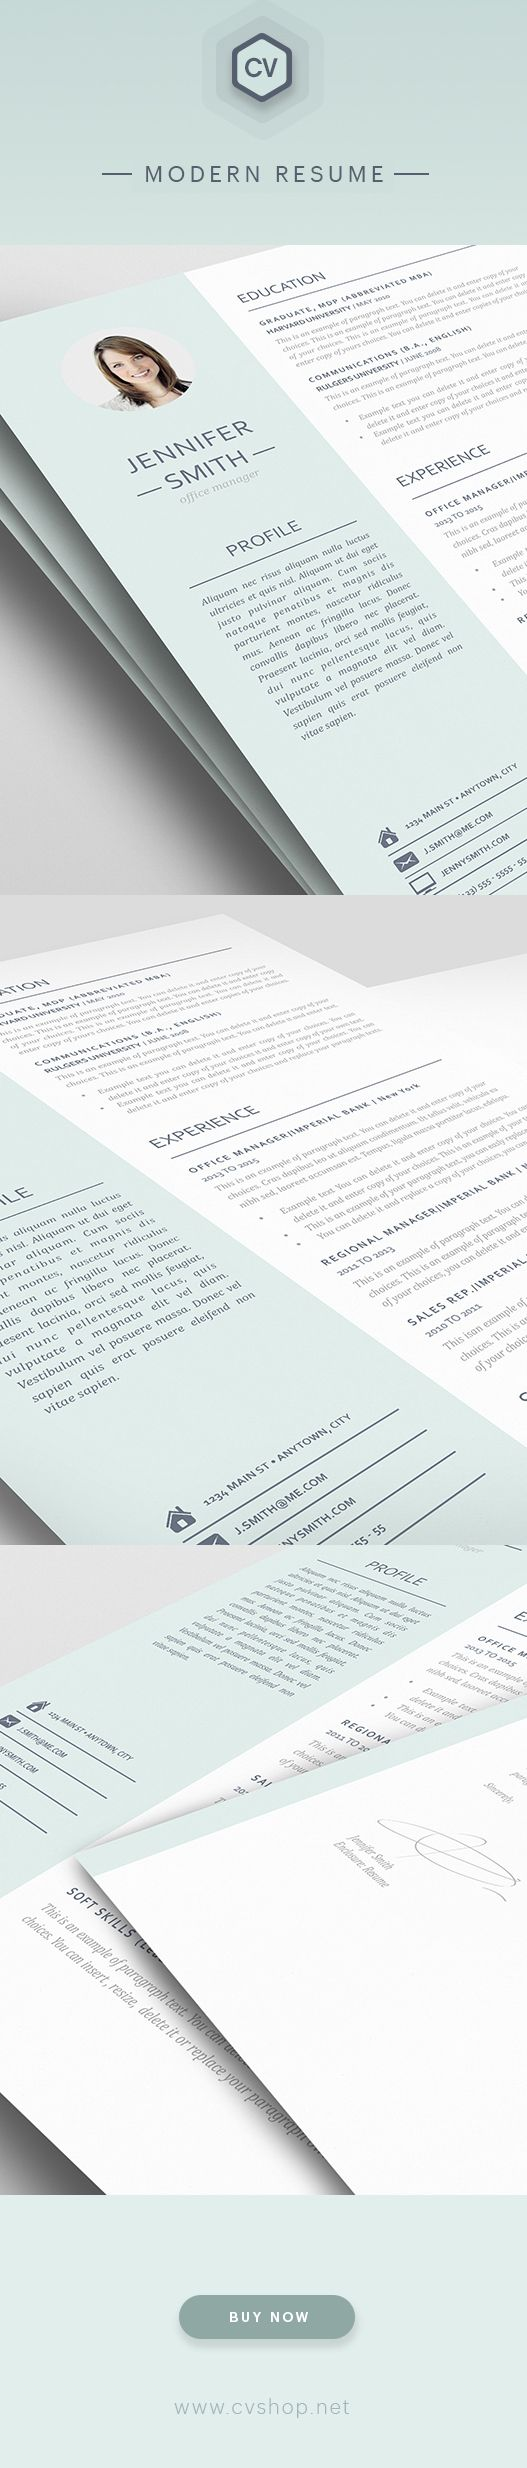 best images about cv word templates modern resume template 110980 9116modern resume templates cvshop net cvshop resume